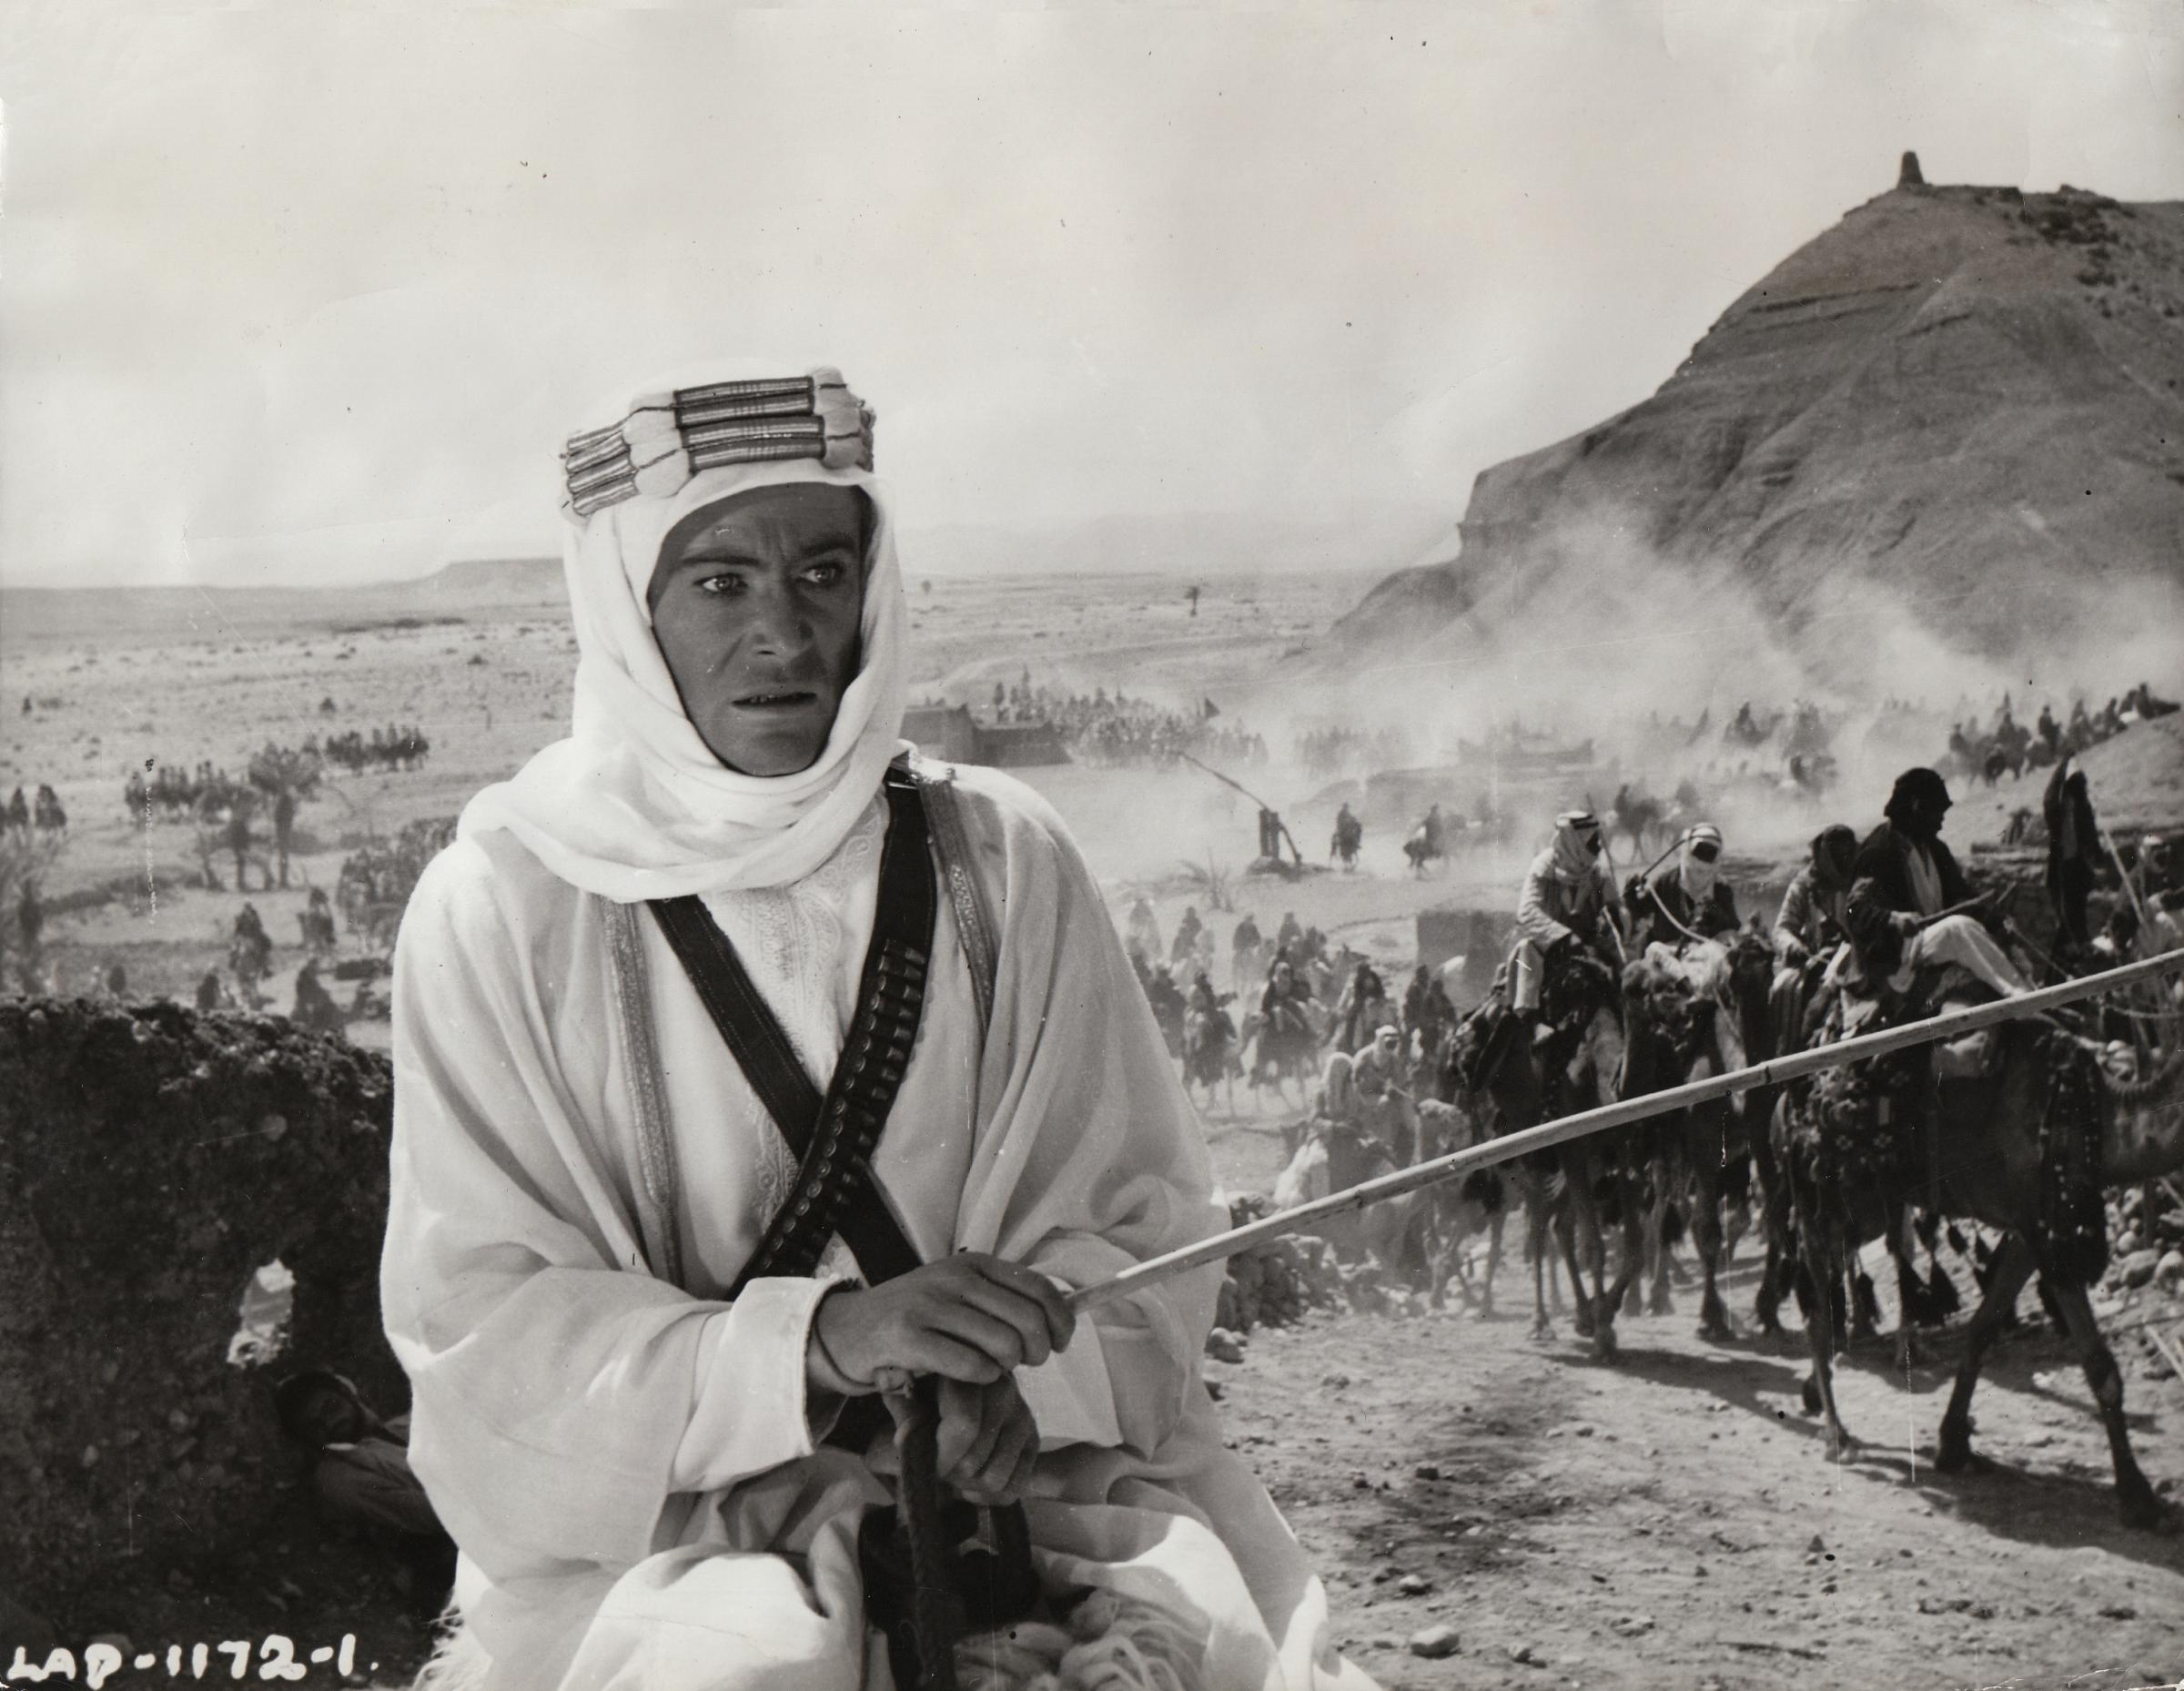 Peter O'Toole as T.E. Lawrence in the 1962 film Lawrence of Arabia.